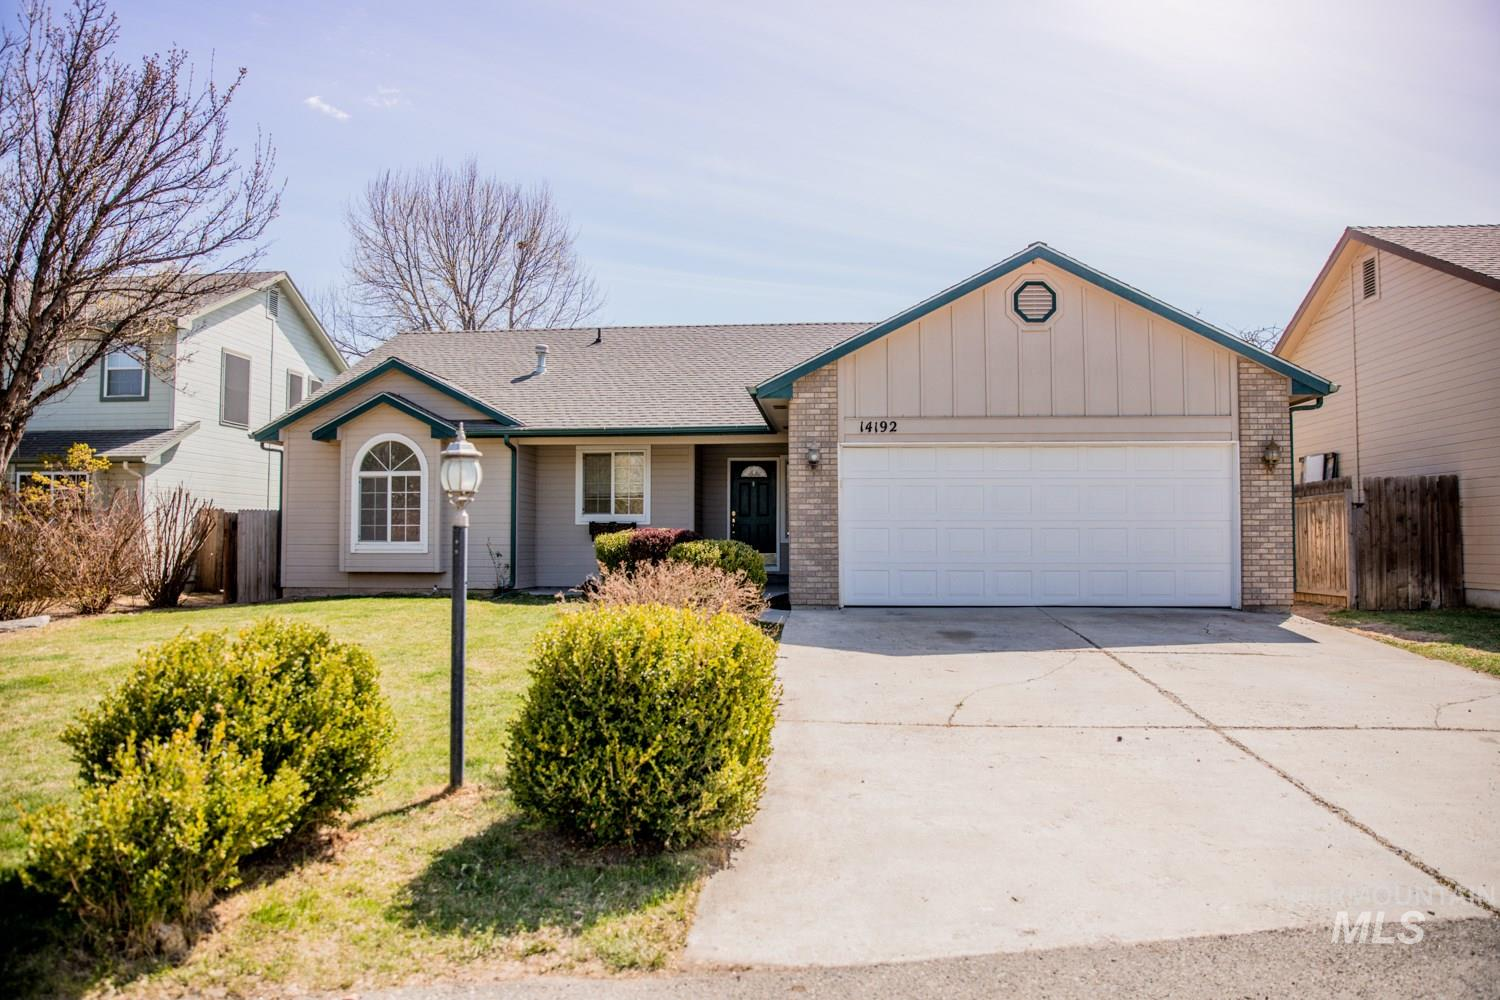 14192 W Chadford Property Photo - Boise, ID real estate listing